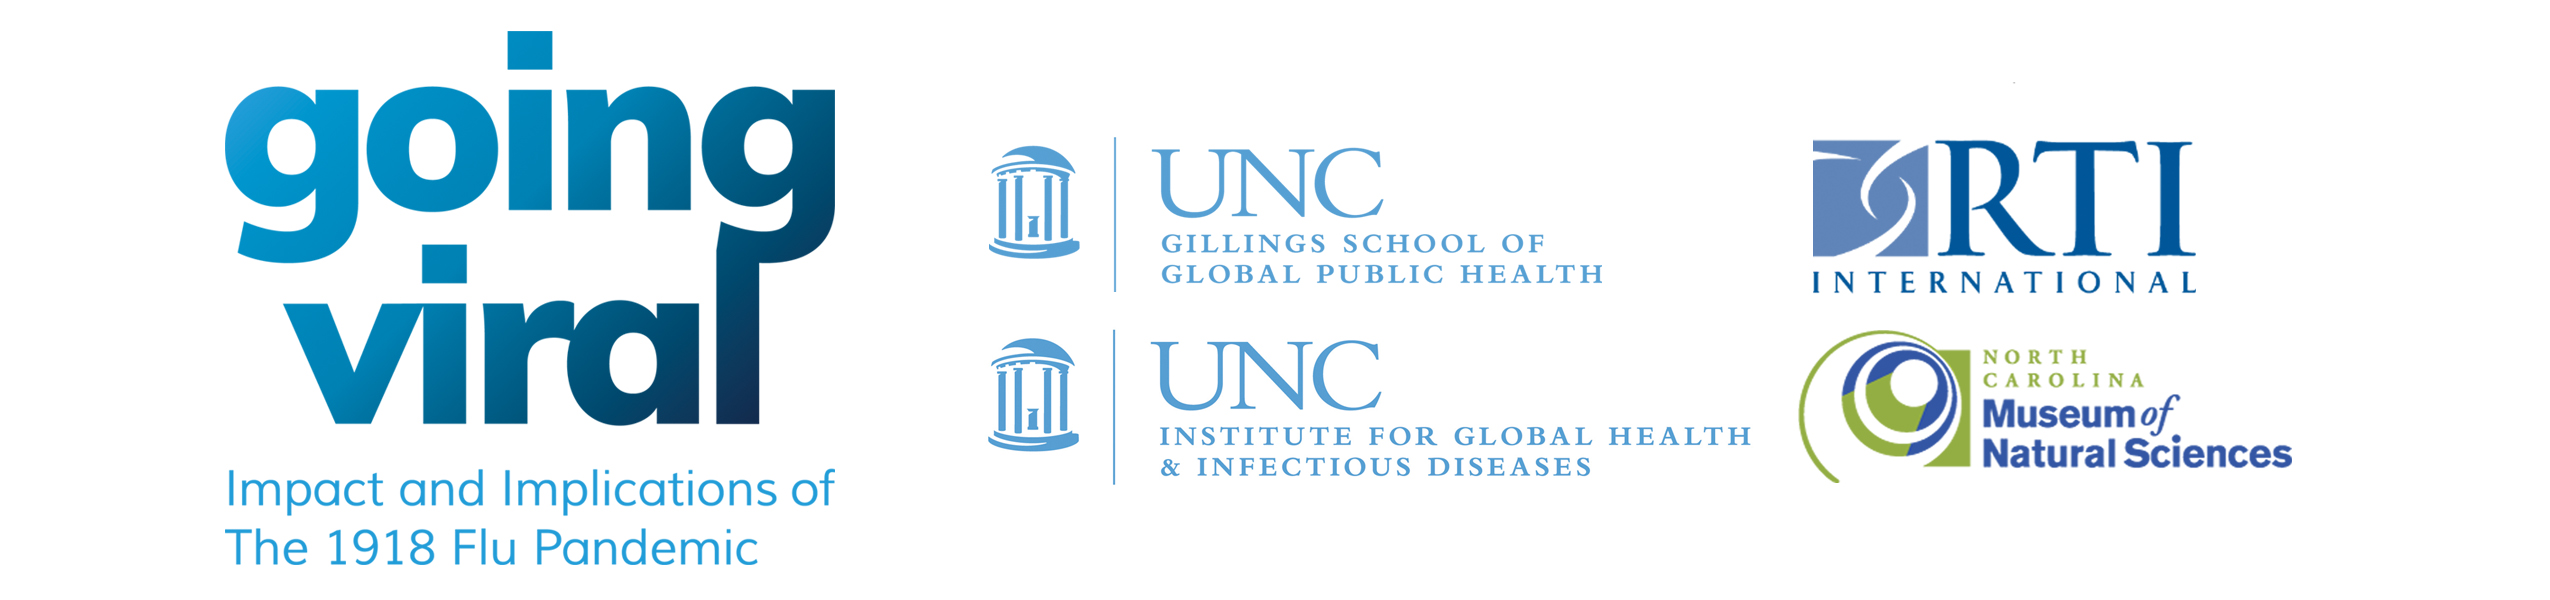 O Lost! UNC-Chapel Hill, Thomas Wolfe and The Great Influenza Pandemic of 1918